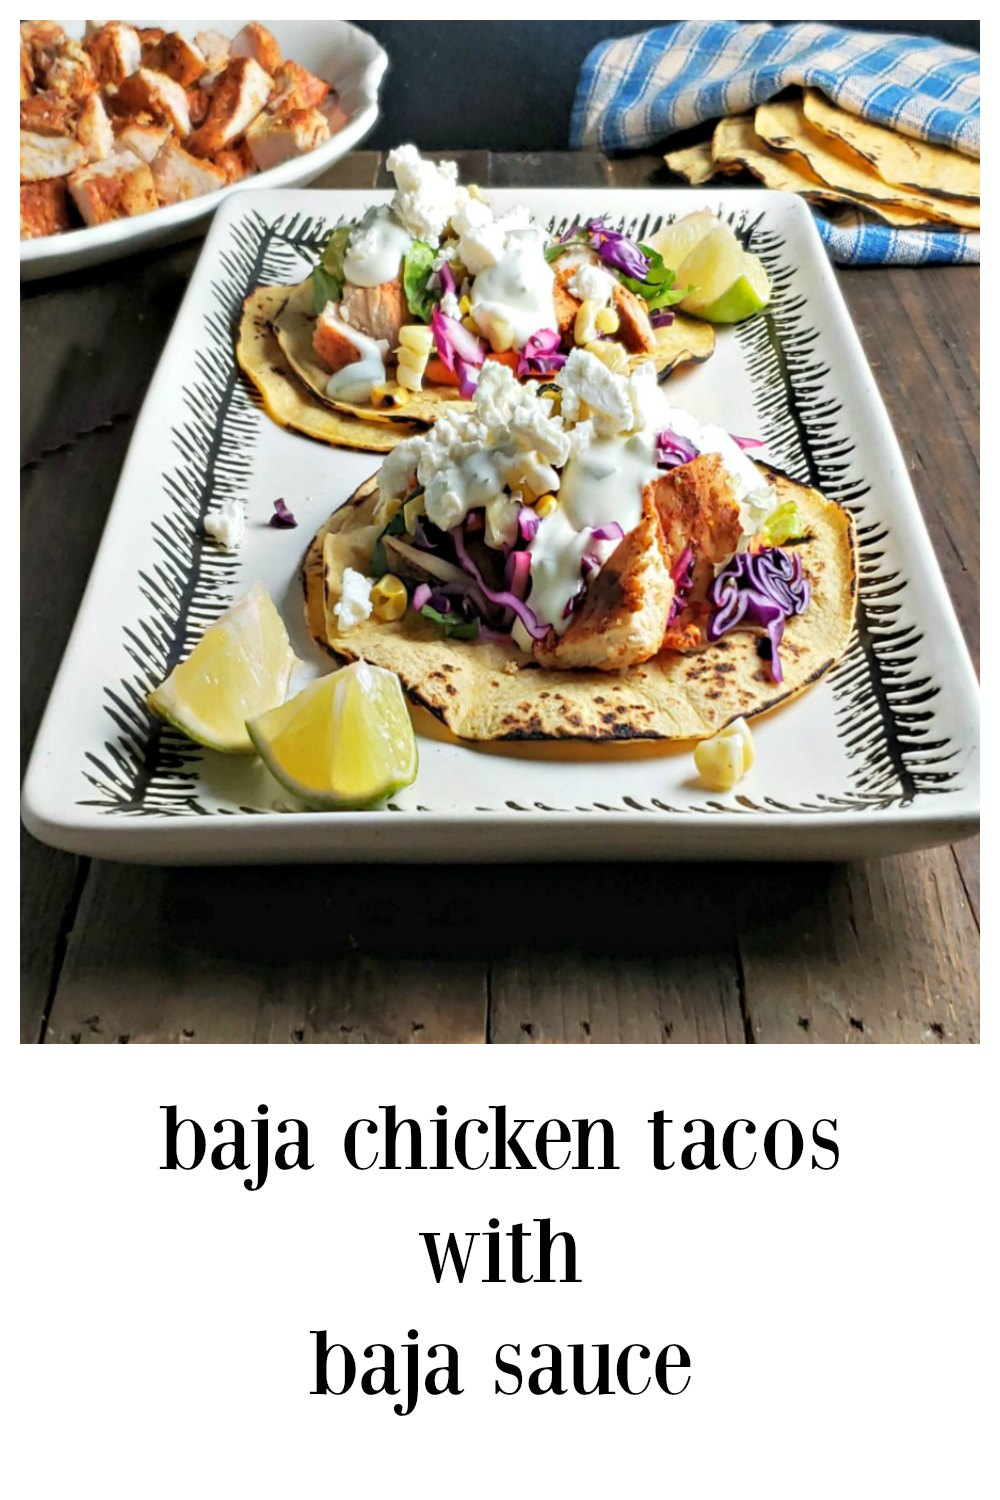 Baja Chicken Tacos & Baja Sauce - You'll never want to go out again when the party is at your house!! Easy, grill or cook in. Flavor for days and that Baja Sauce!!! #Street Tacos #BajaTacos #BajaChickenTacos #ChickenTacos #Grilled Tacos